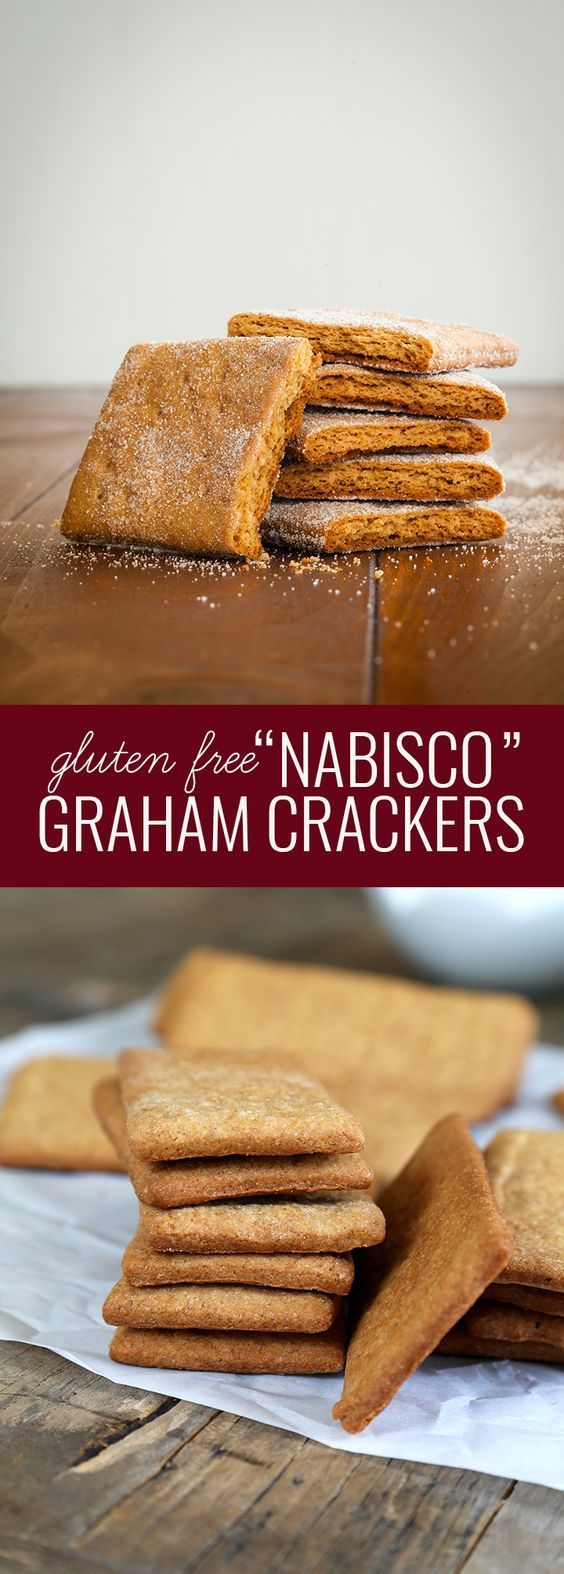 "Gluten Free ""Nabisco"" Graham Crackers. Just like the ""real thing""!"